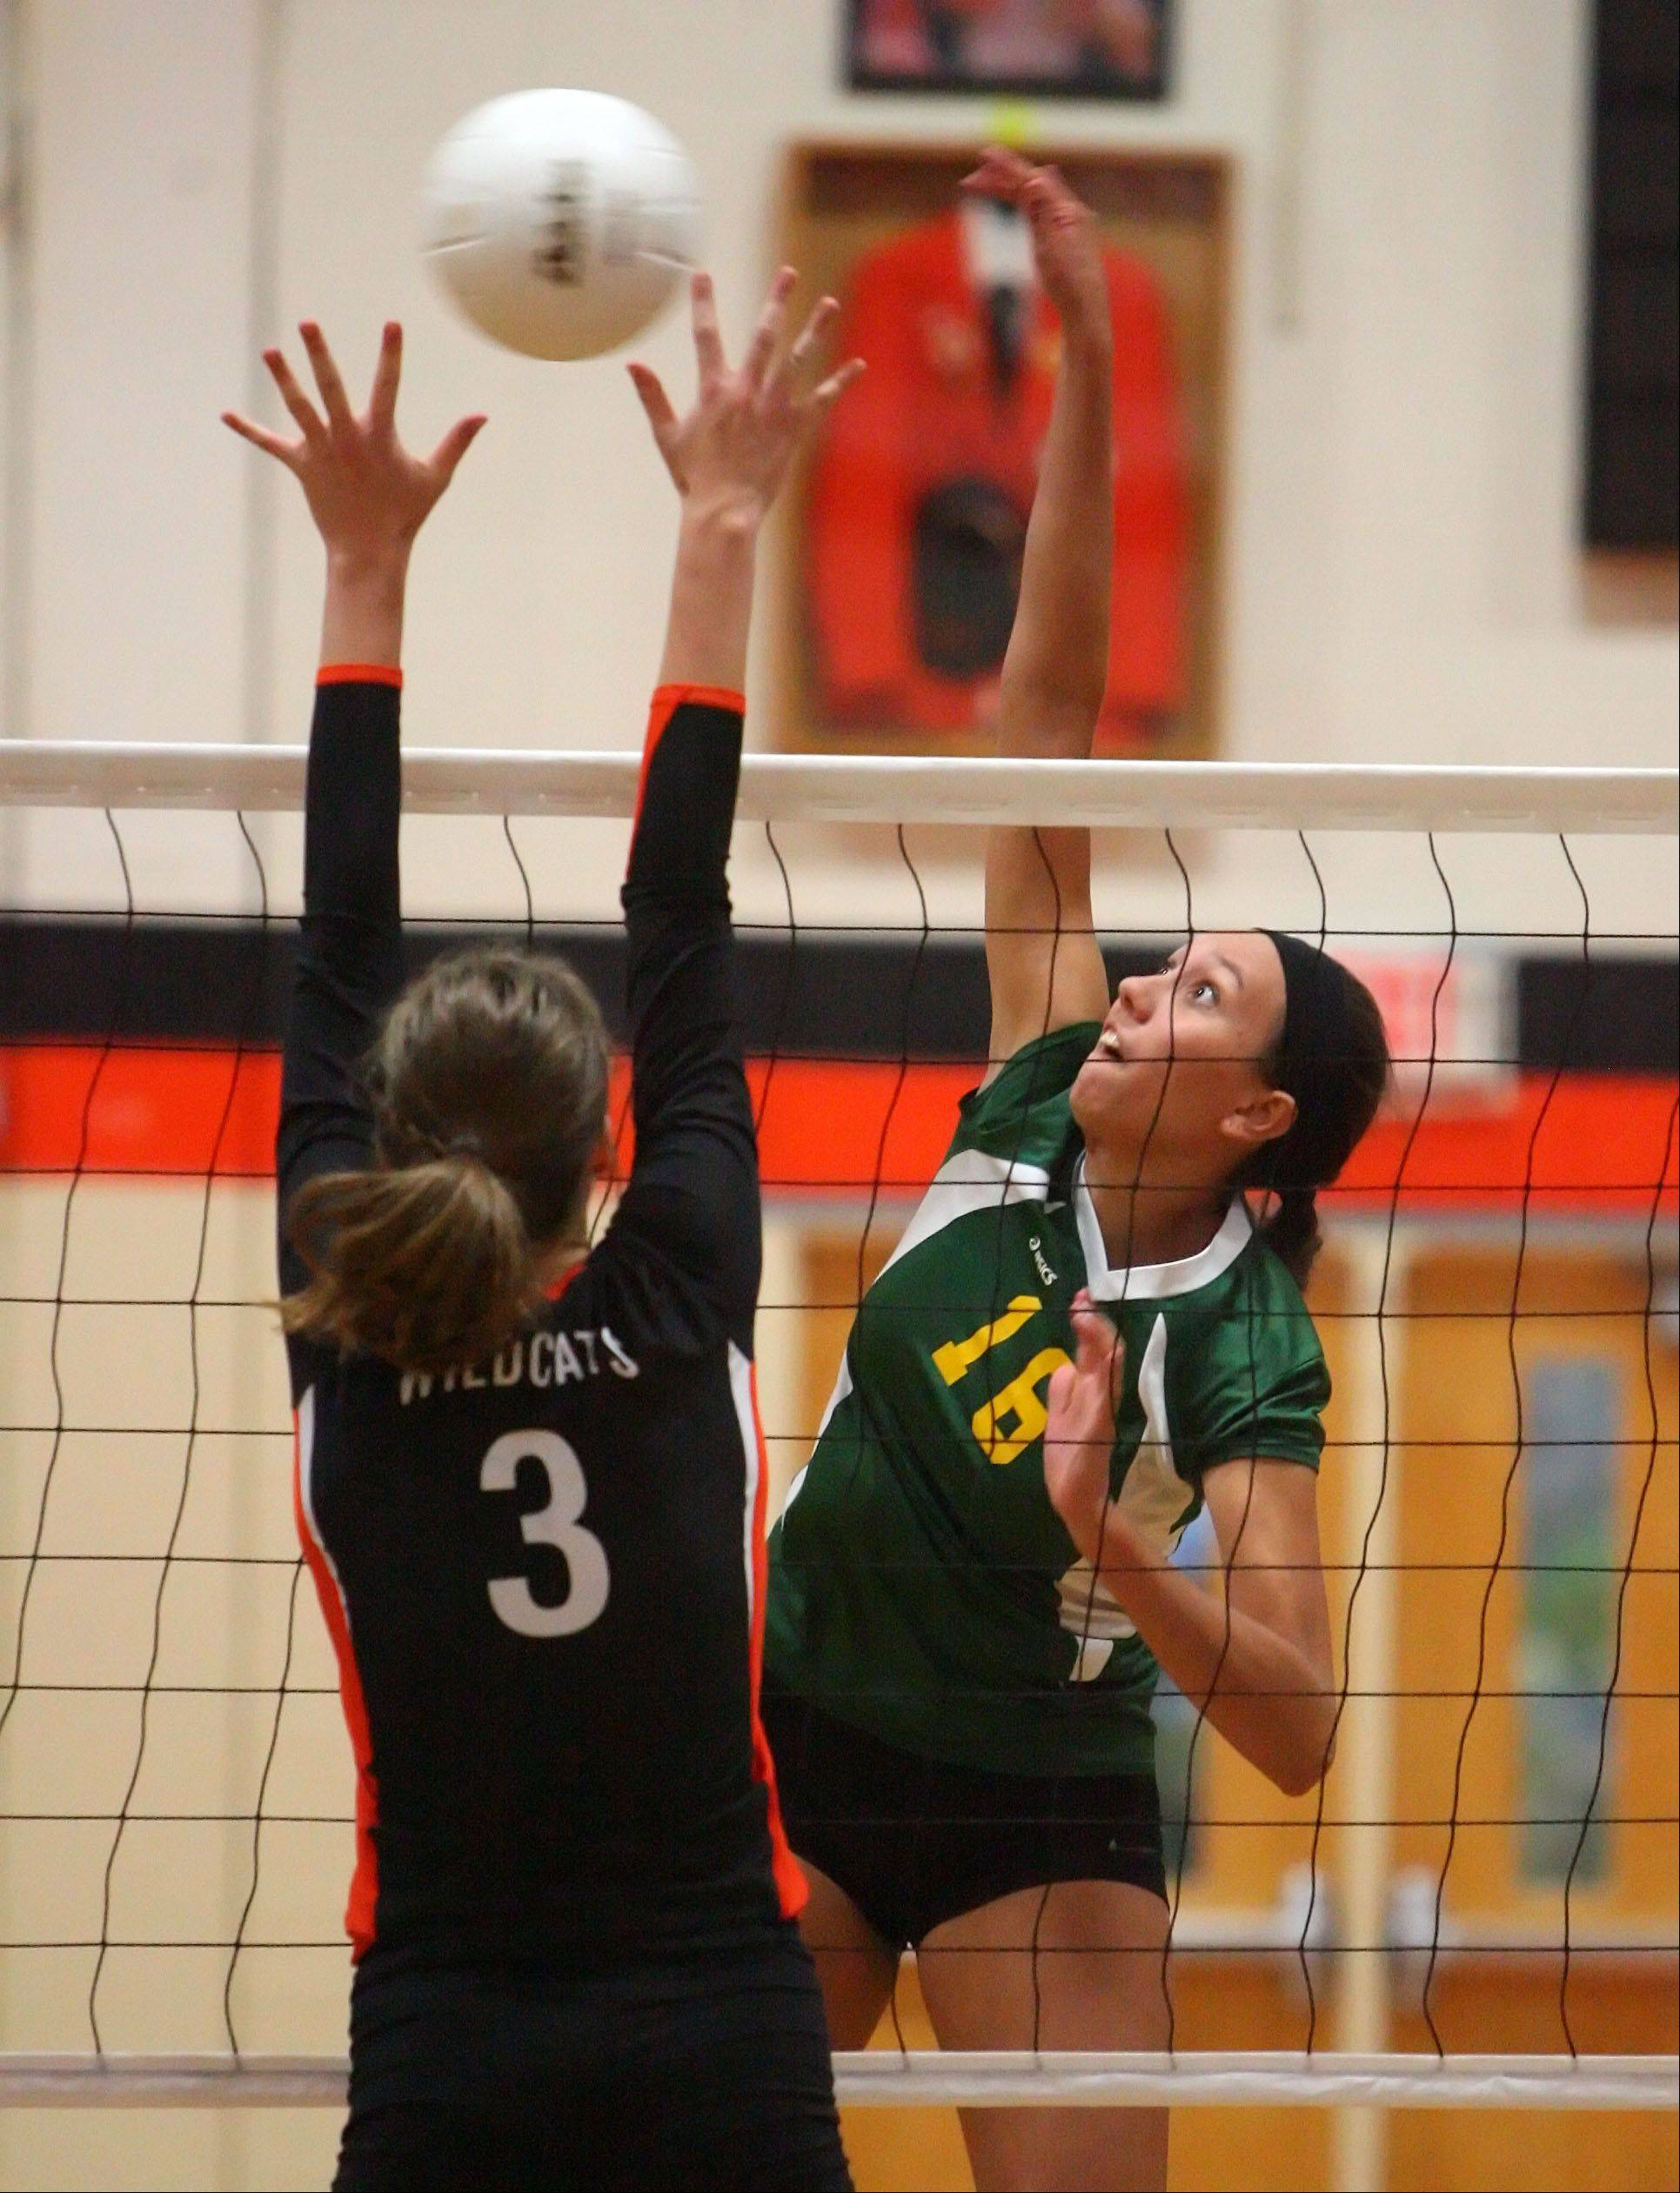 Stevenson's Liza Pflugradt, right, spikes one at Libertyville's Taylor Zant during their game Wednesday night at Libertyville.